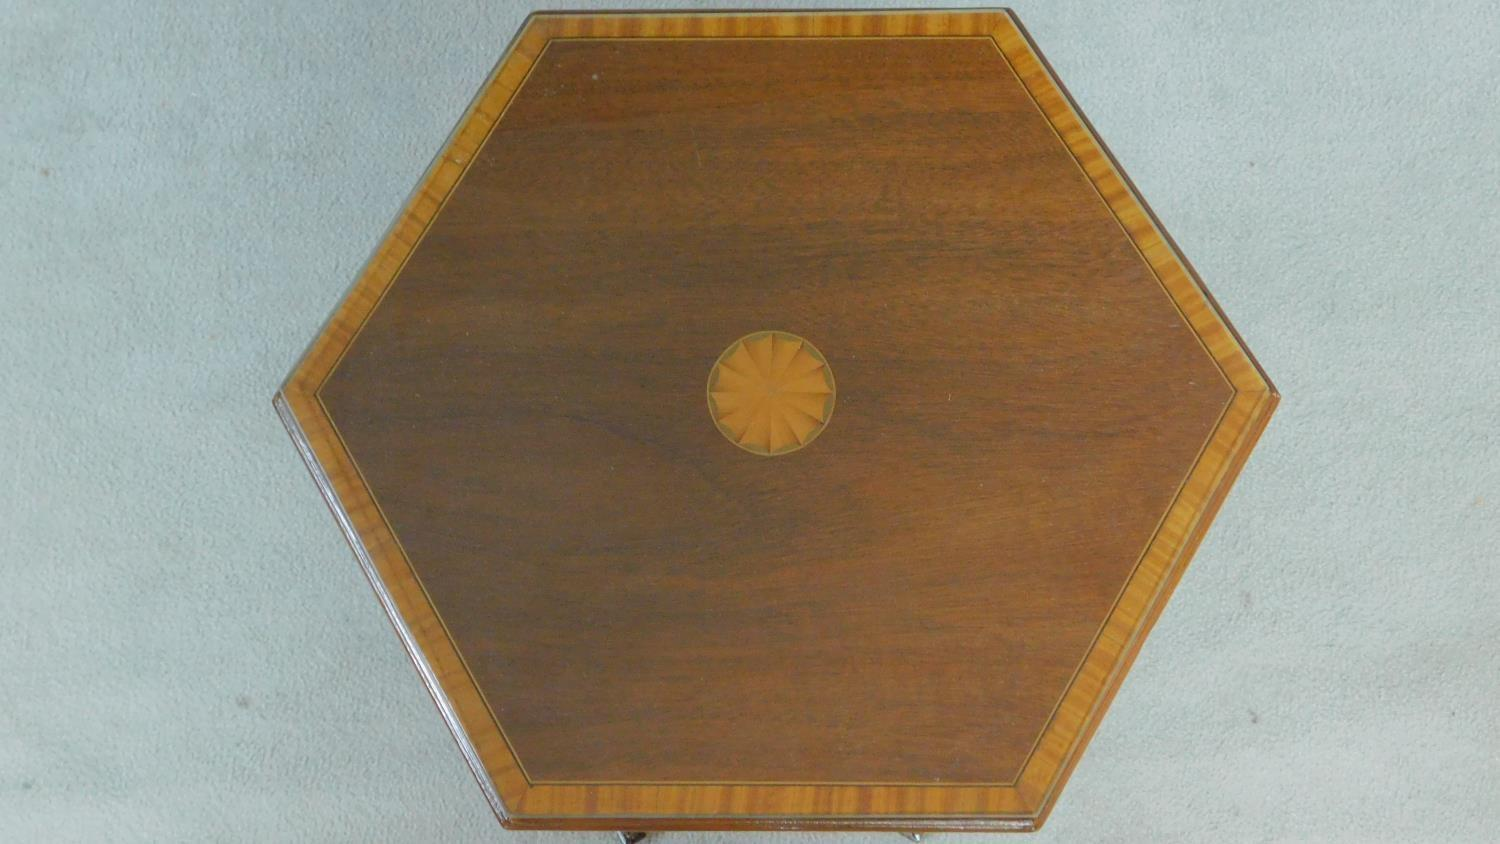 An Arts & Crafts mahogany and satinwood inlaid hexagonal carved lamp table raised on square tapering - Image 3 of 5